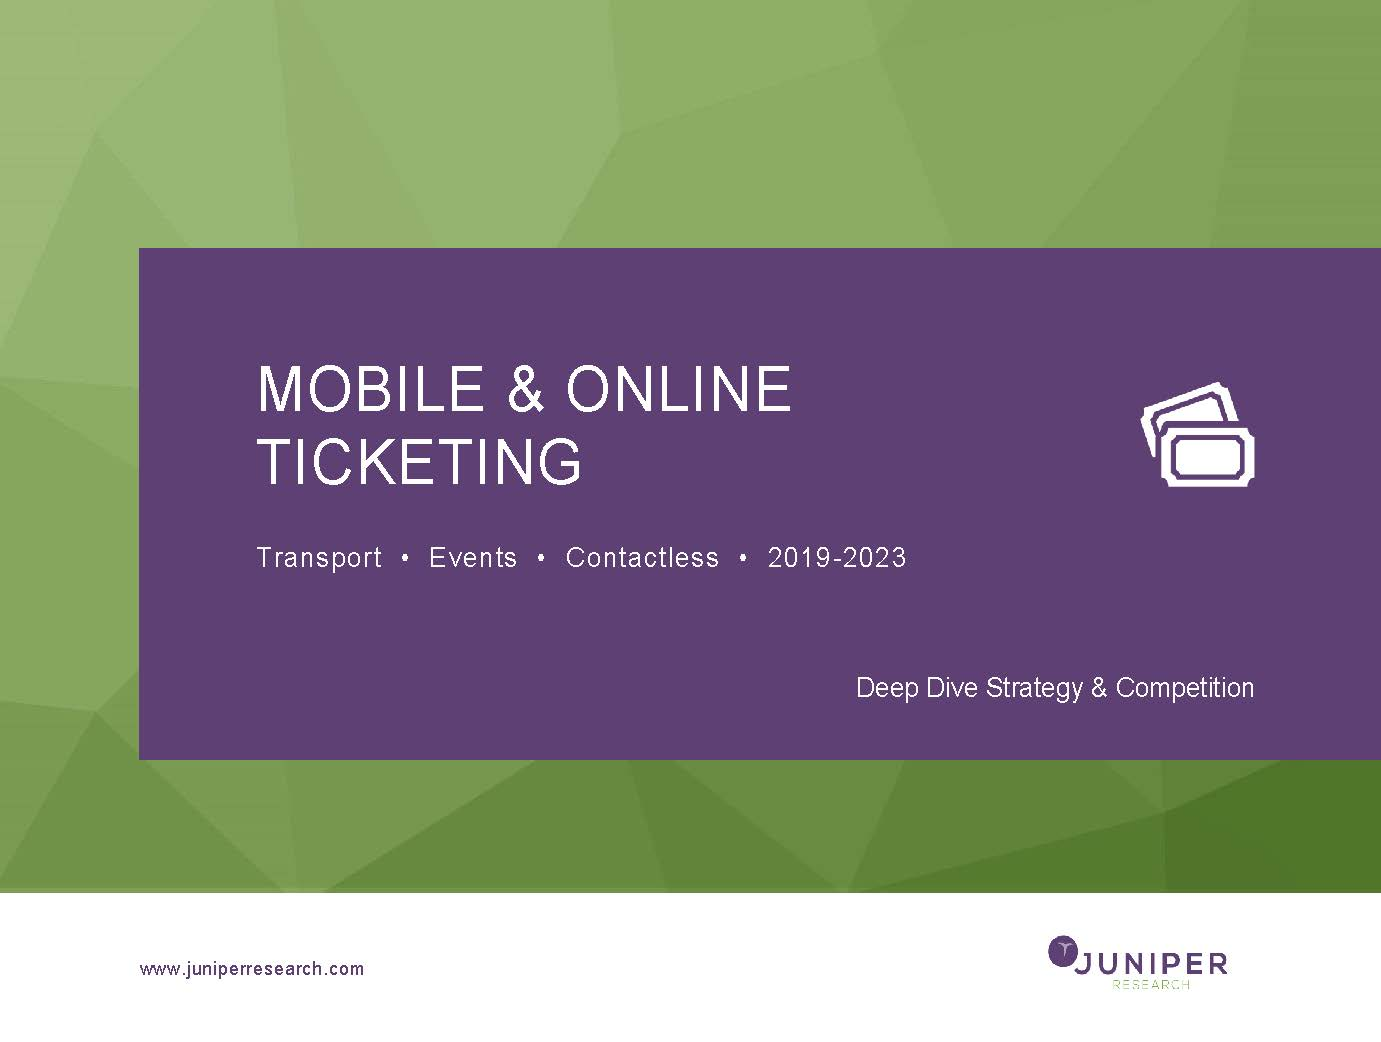 Mobile & Online Ticketing: Deep Dive Strategy & Competition 2019-2023